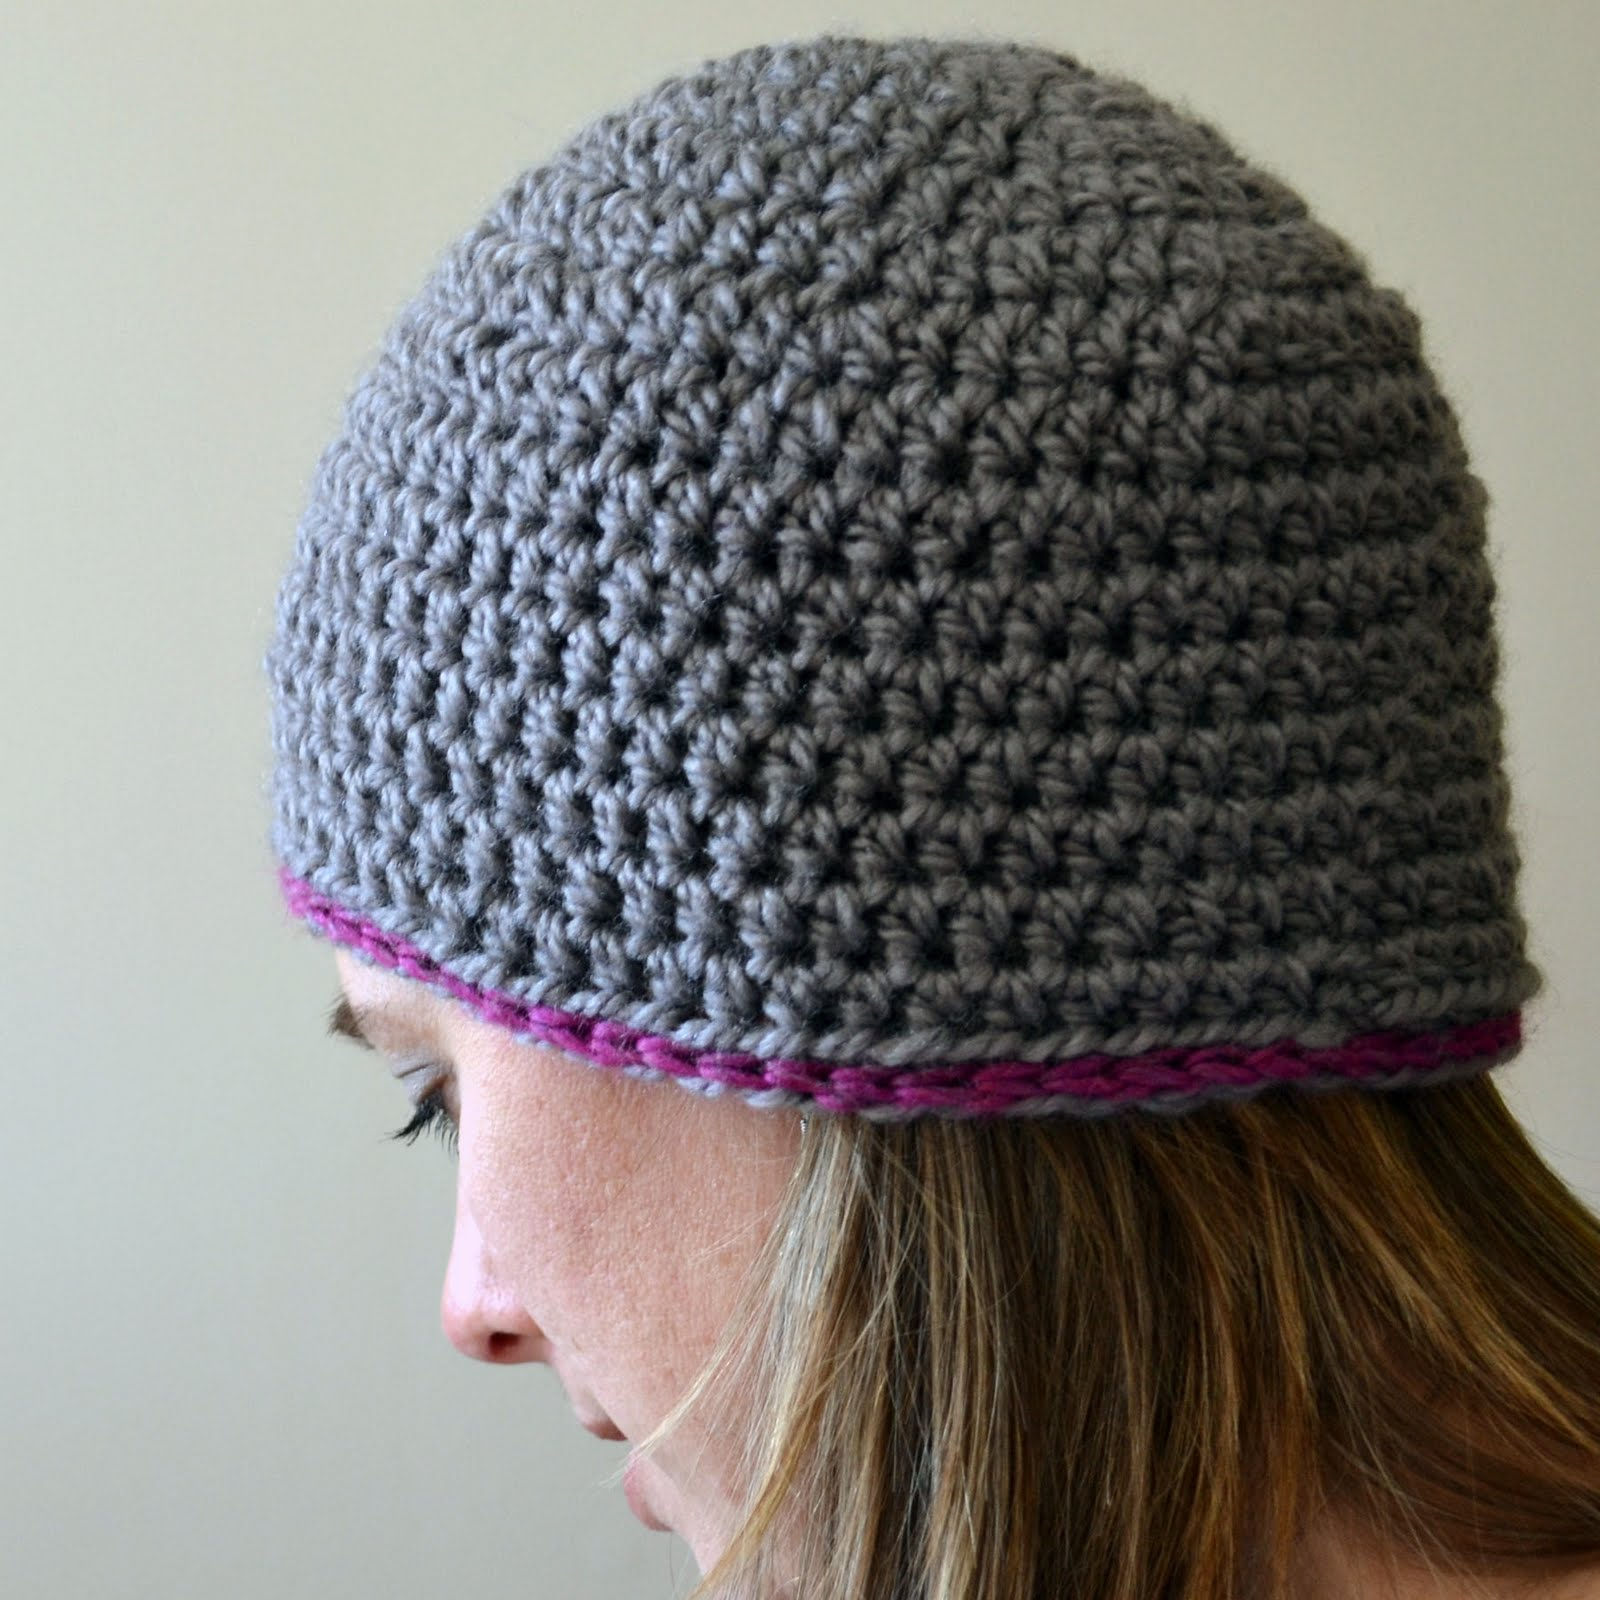 How To Crochet A Beanie : How To Crochet A Beanie For Beginners One for a beanie hat.